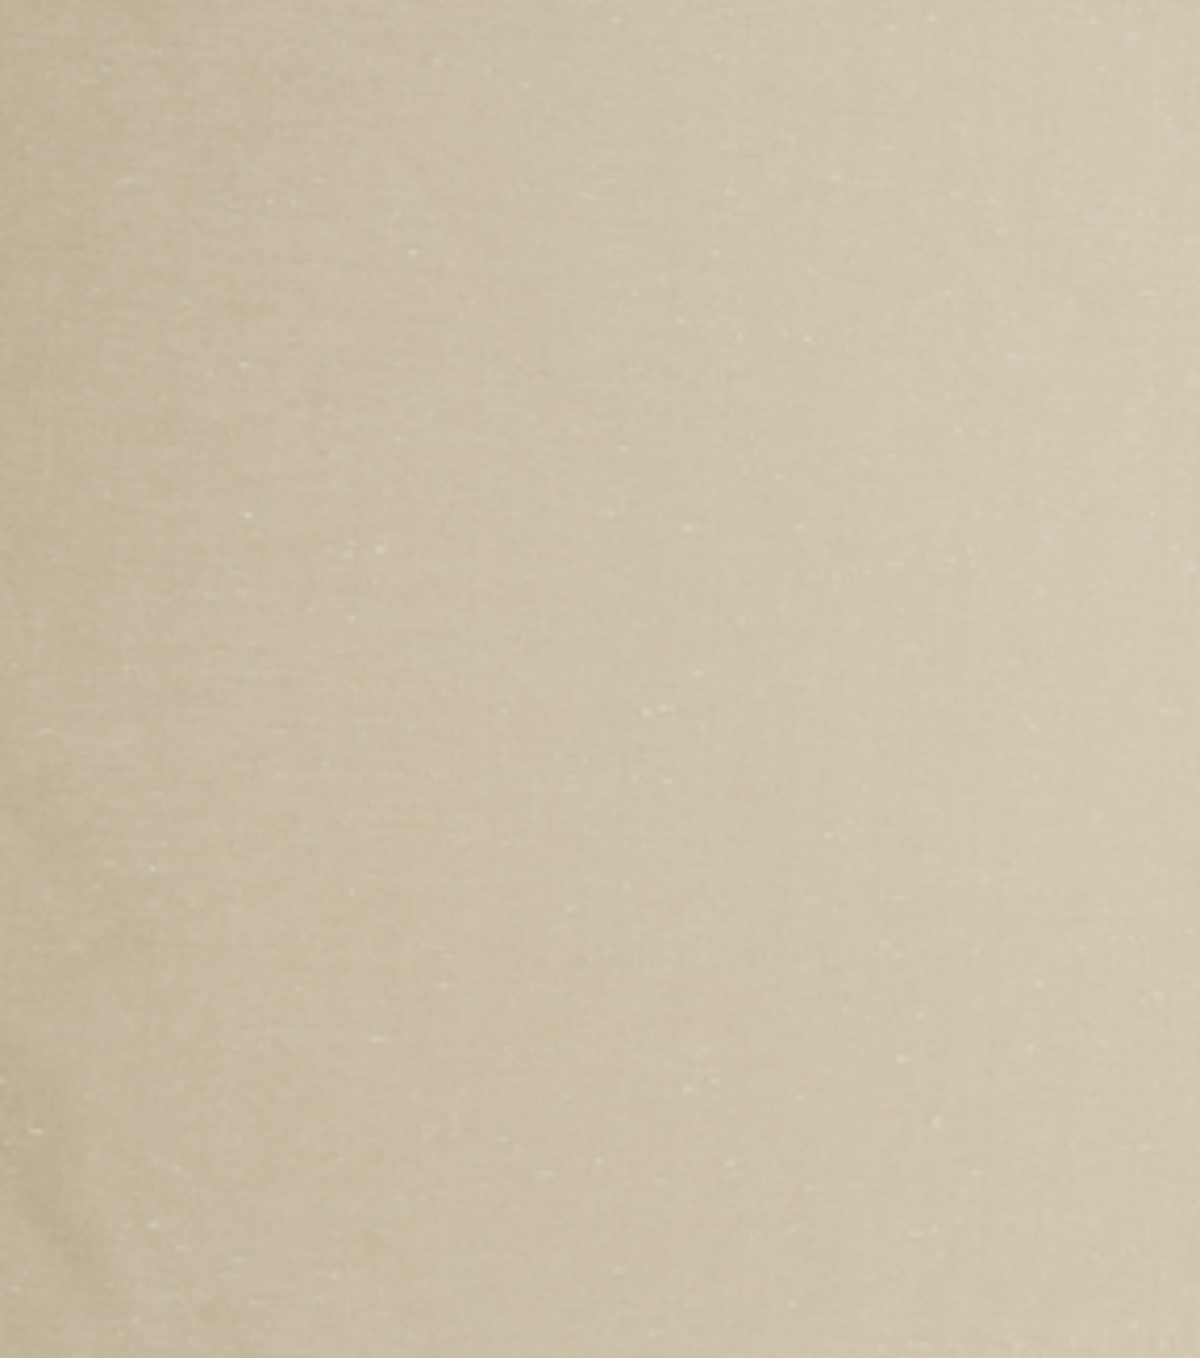 Home Decor 8\u0022x8\u0022 Fabric Swatch-Signature Series Airforce Khaki